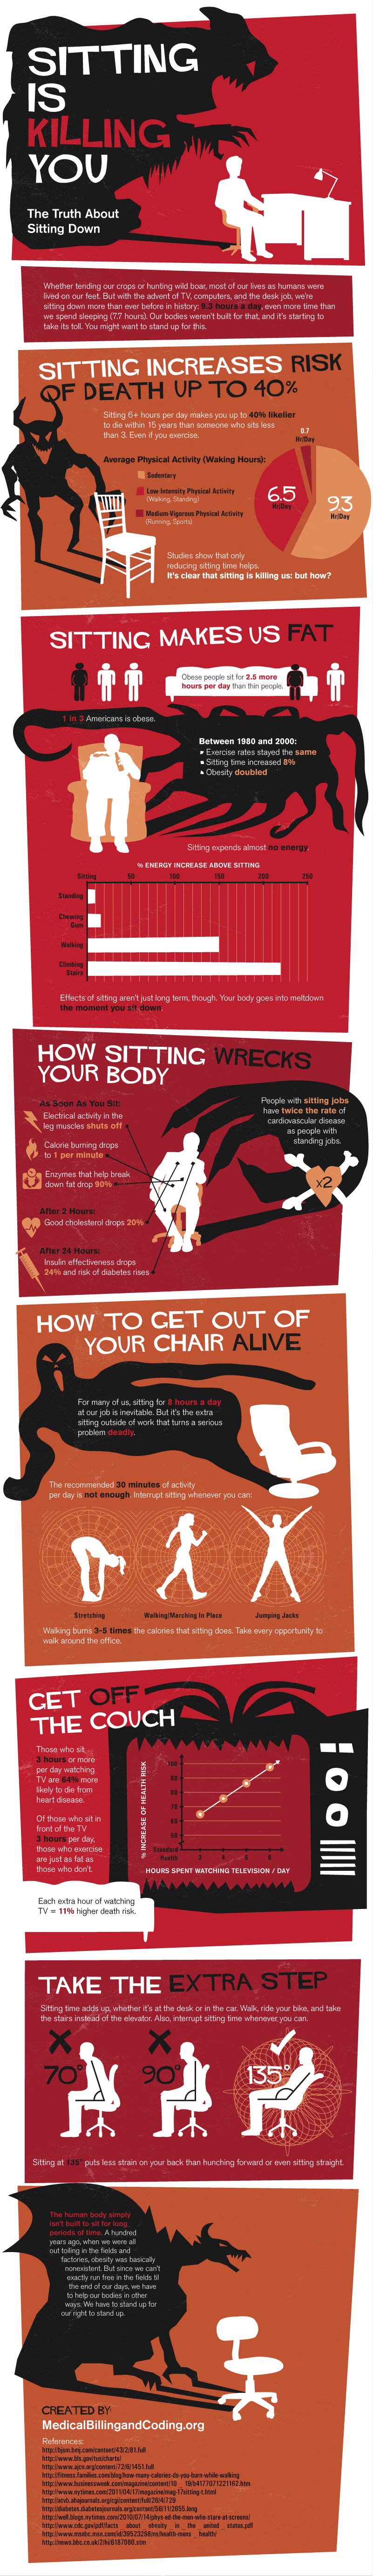 Sitting is killing you!!